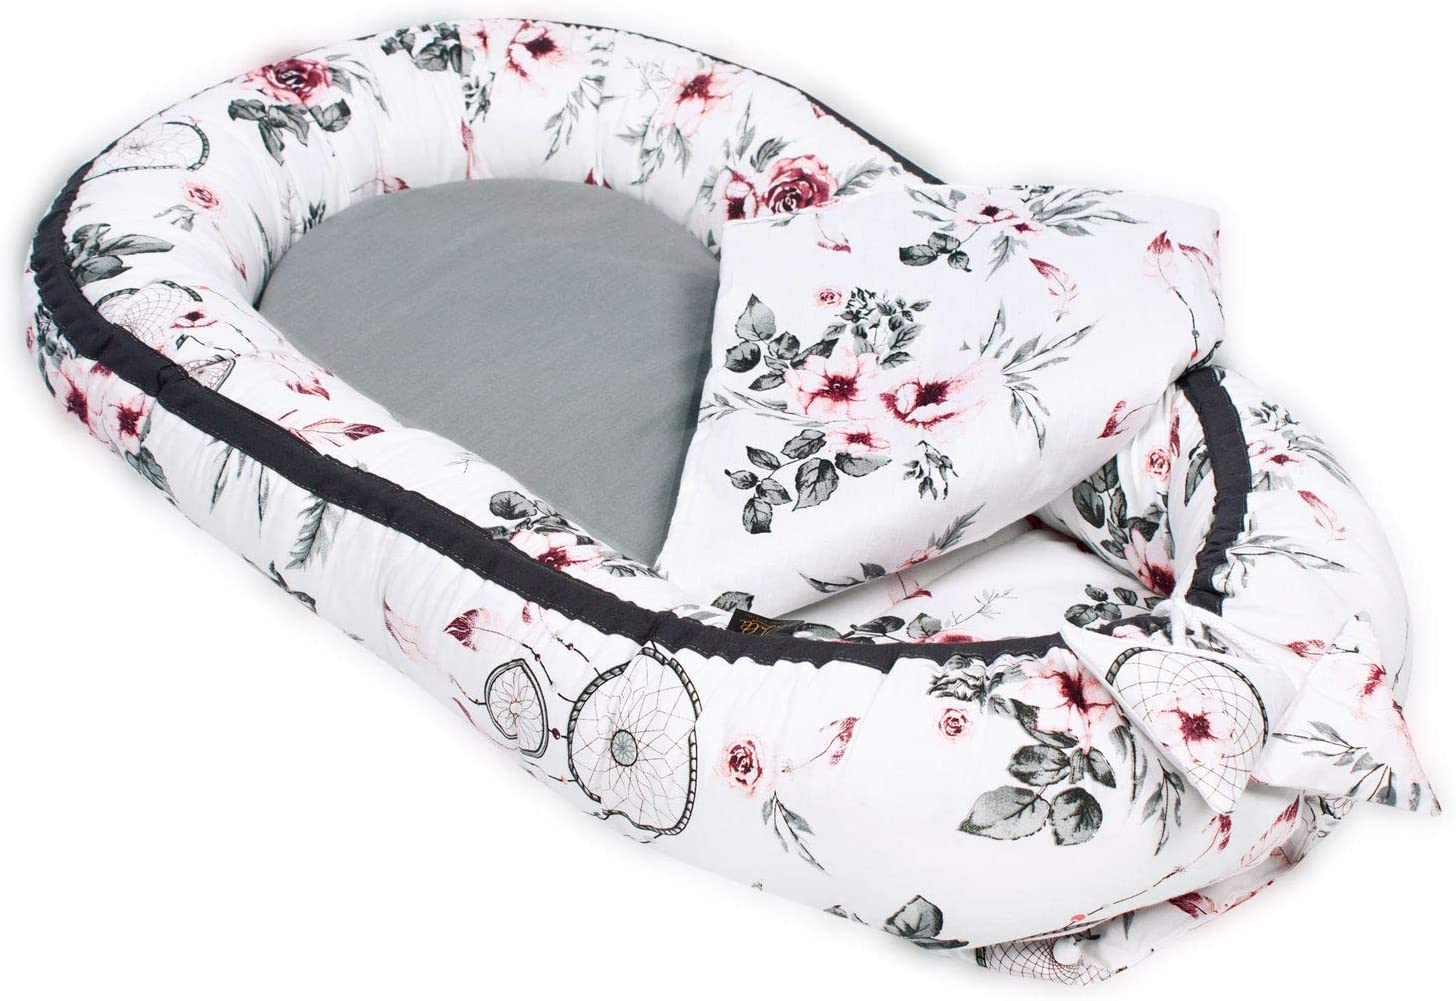 Hypoallergenic Cocoon Palulli Baby Nest Multifunctional Cosy Nest with Soft Extra Mattress Cot Cot 100/% Cotton Oeko-Tex Made in The EU Travel Cot for Newborn